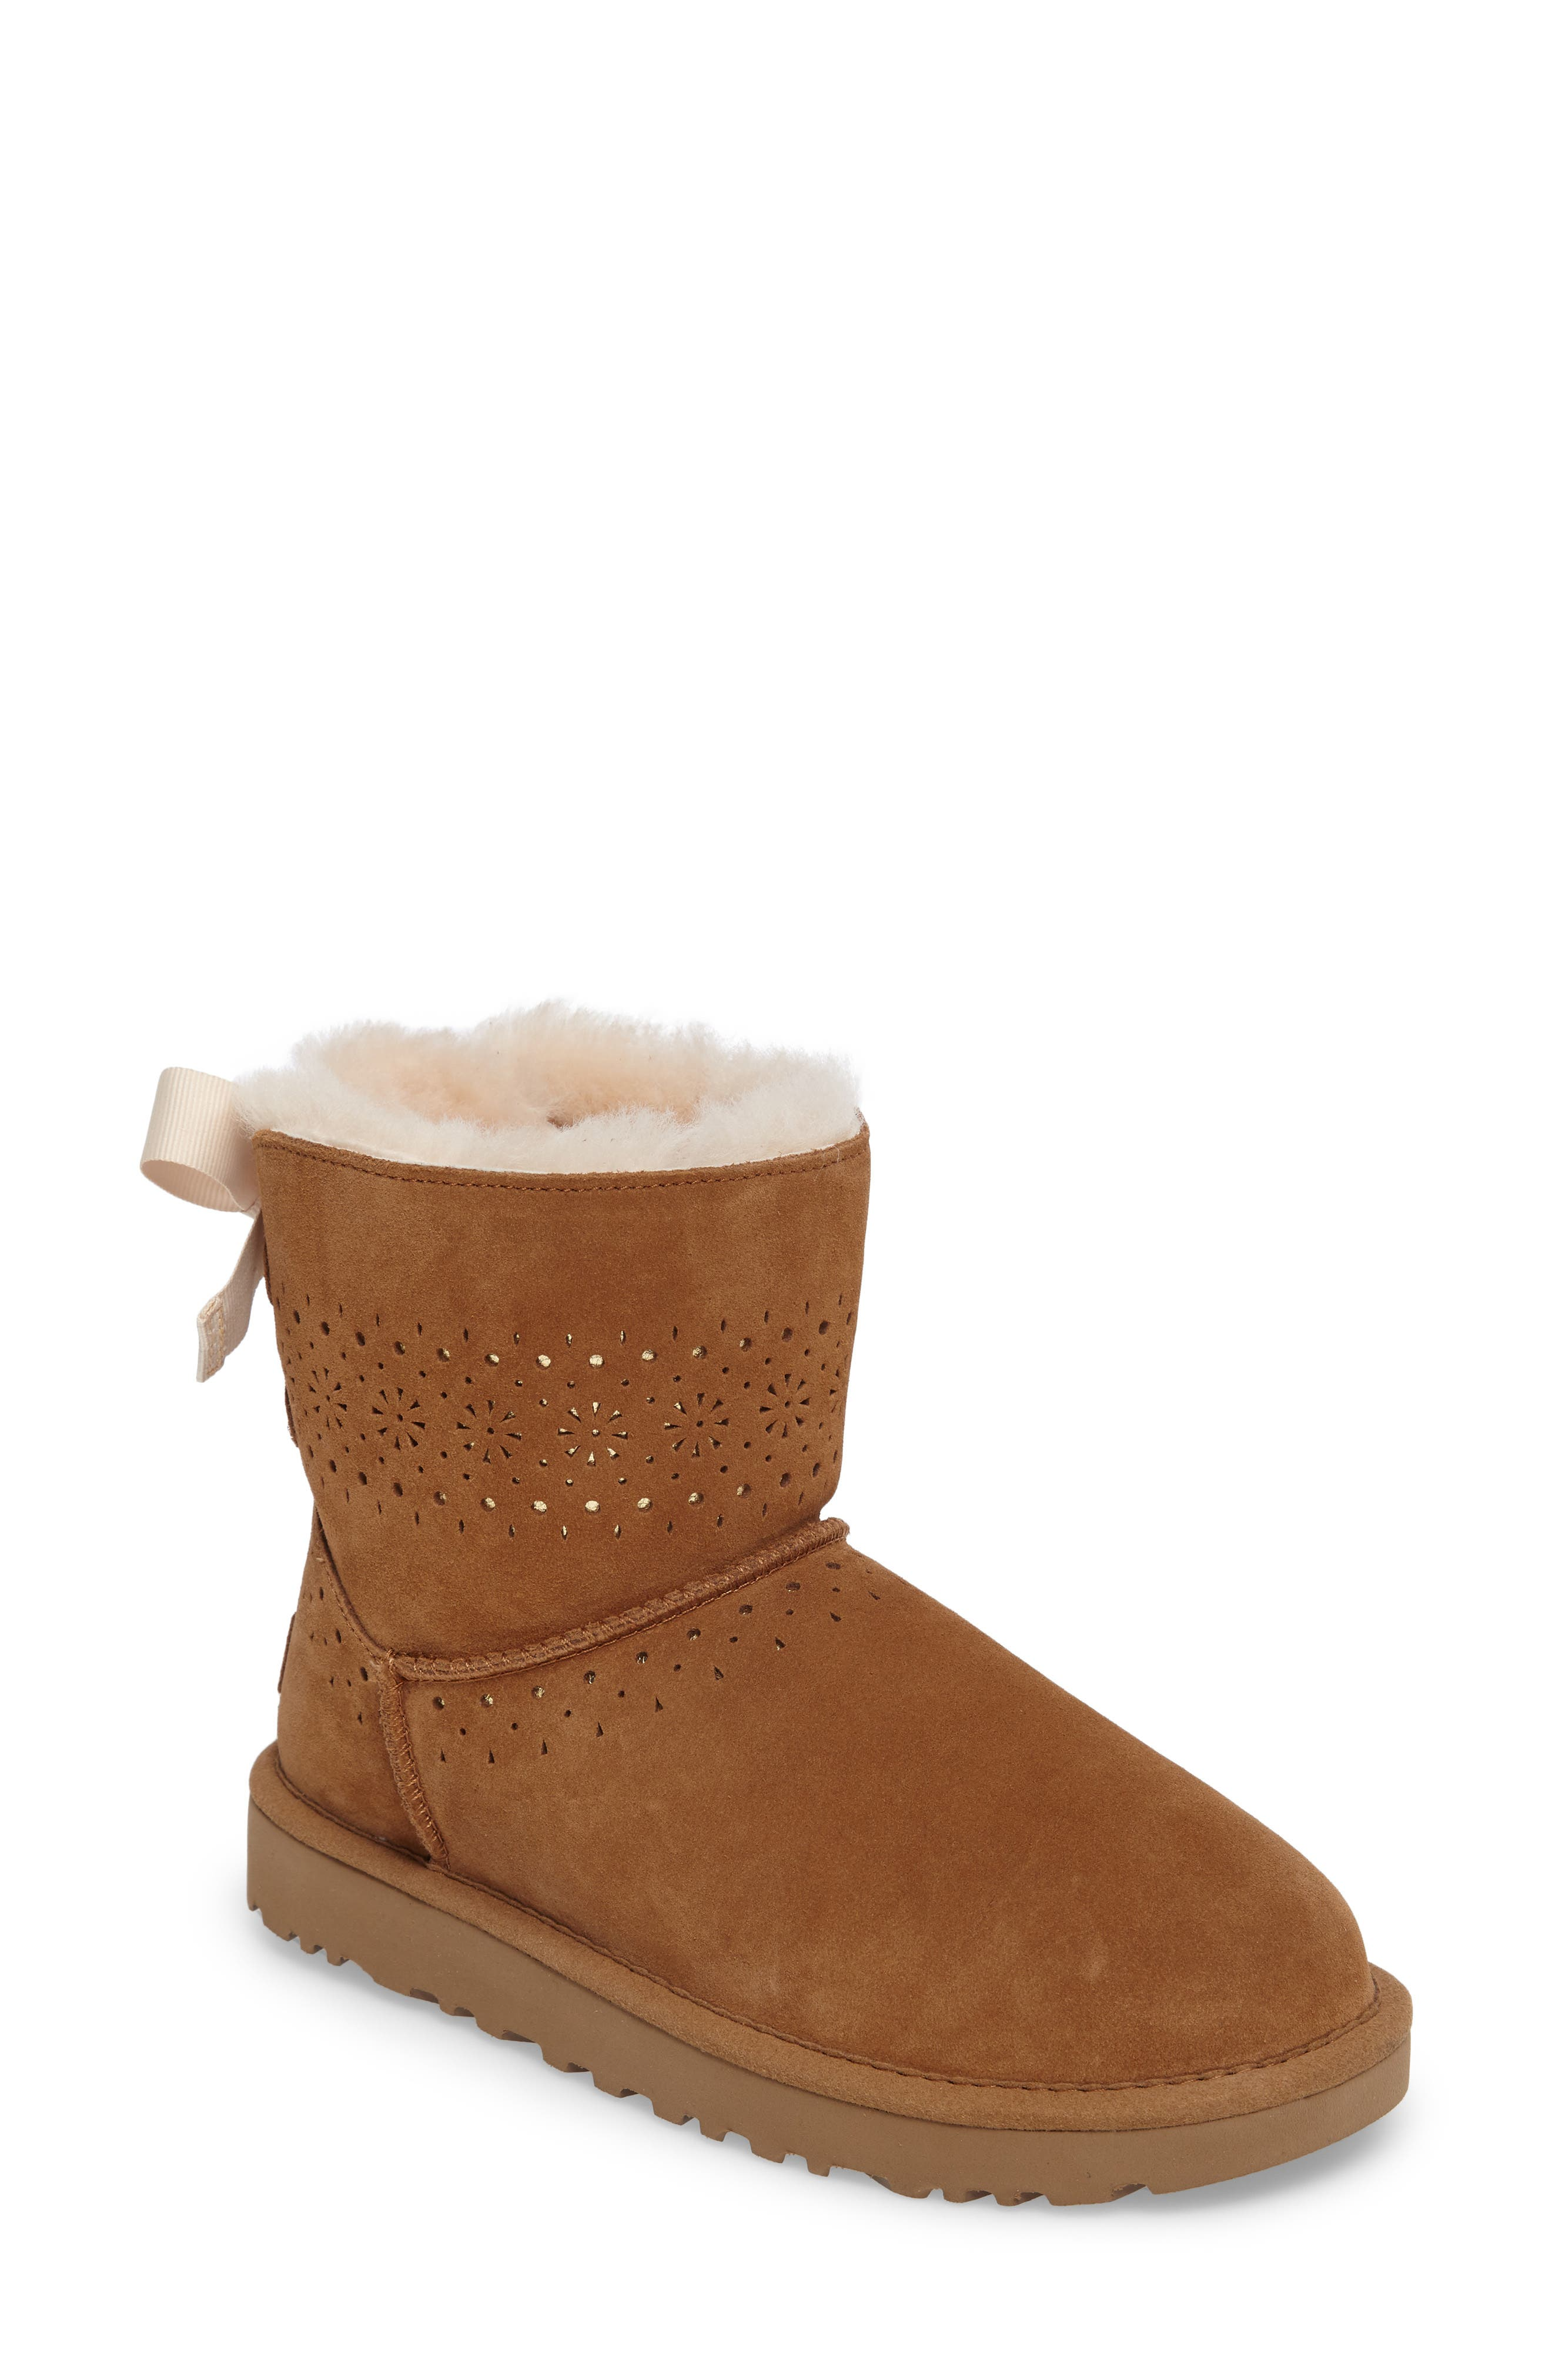 Main Image - UGG® Dae Sunshine Boot (Women)